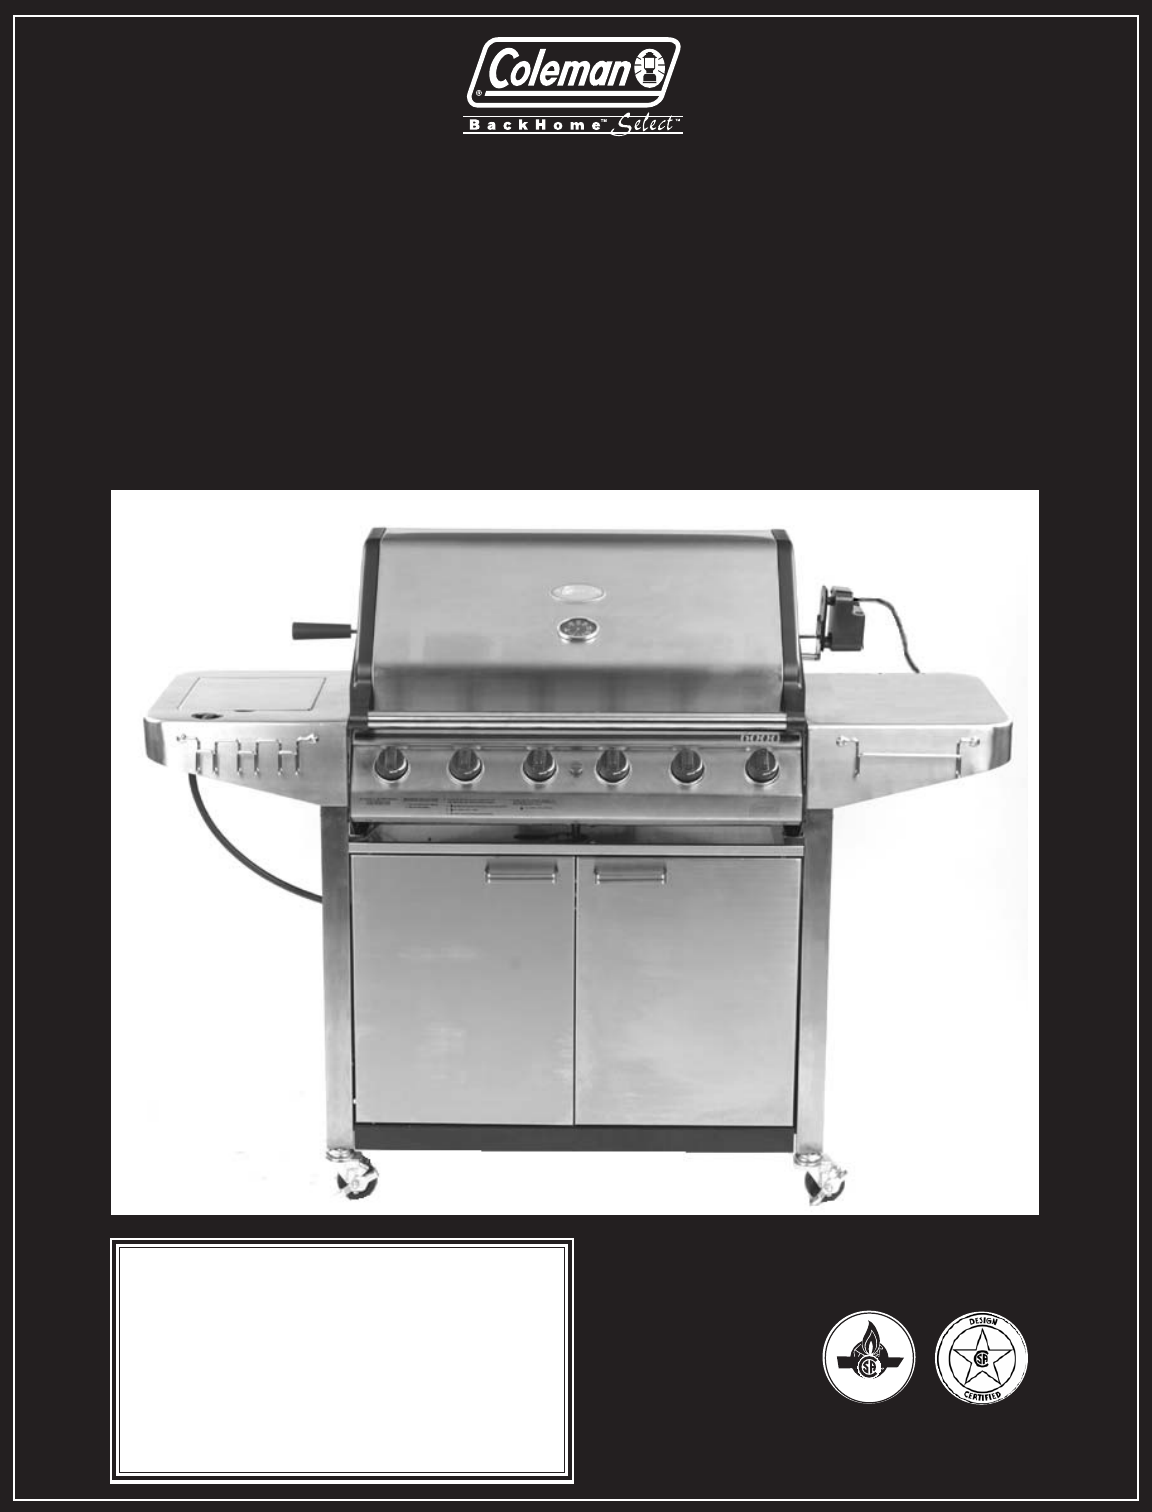 coleman gas grill 9947a726 user guide manualsonline com